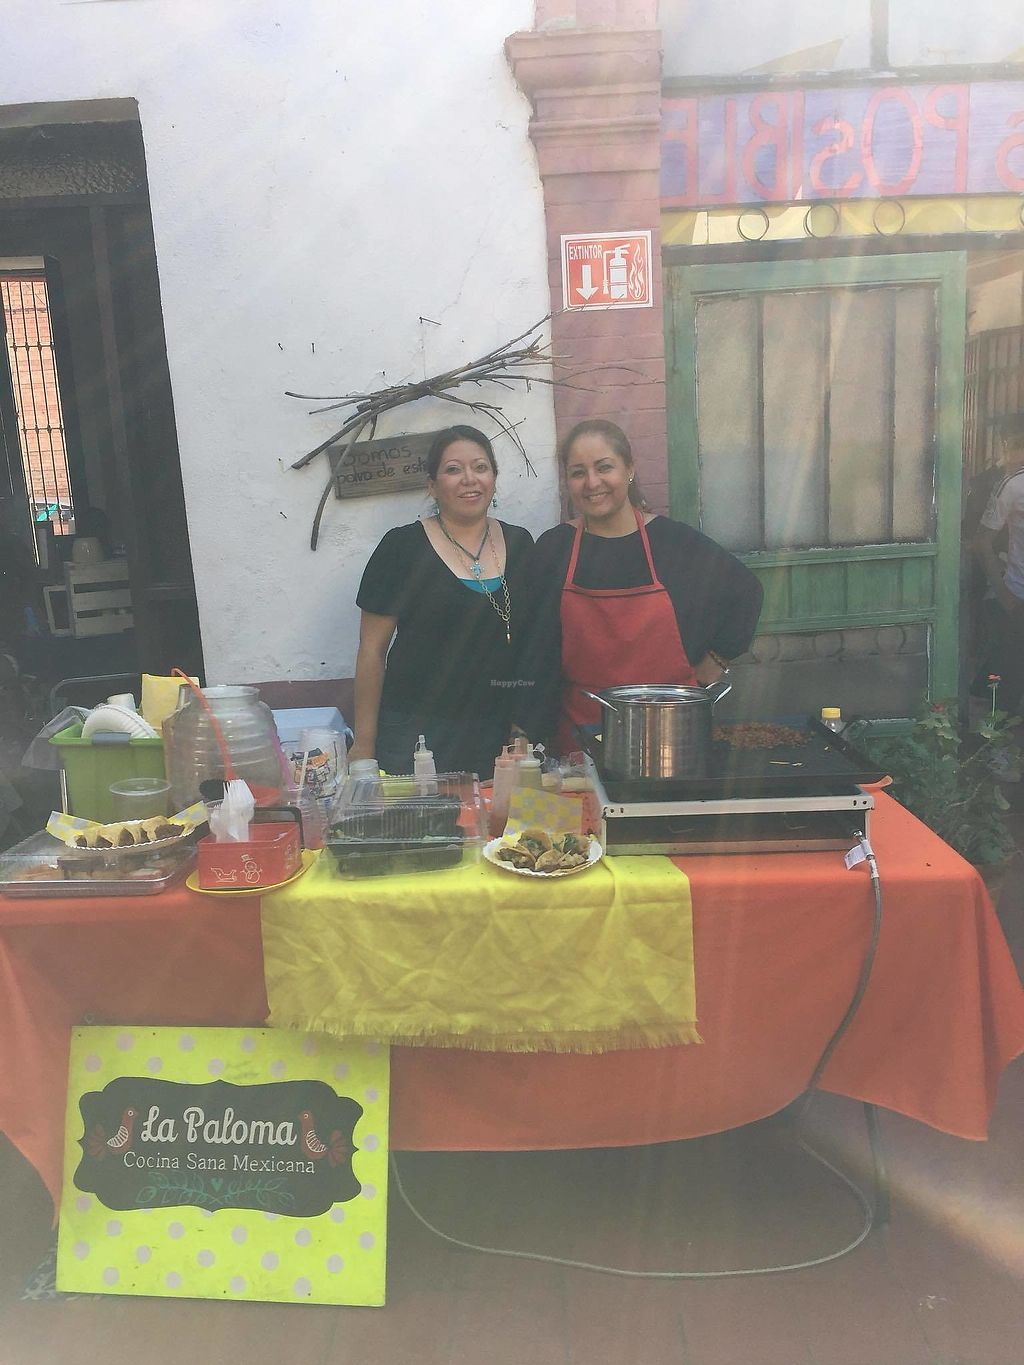 """Photo of La Paloma Cocina Sana y Vegana  by <a href=""""/members/profile/fabiolamm"""">fabiolamm</a> <br/>Diana, the owner <br/> April 2, 2018  - <a href='/contact/abuse/image/114593/379611'>Report</a>"""